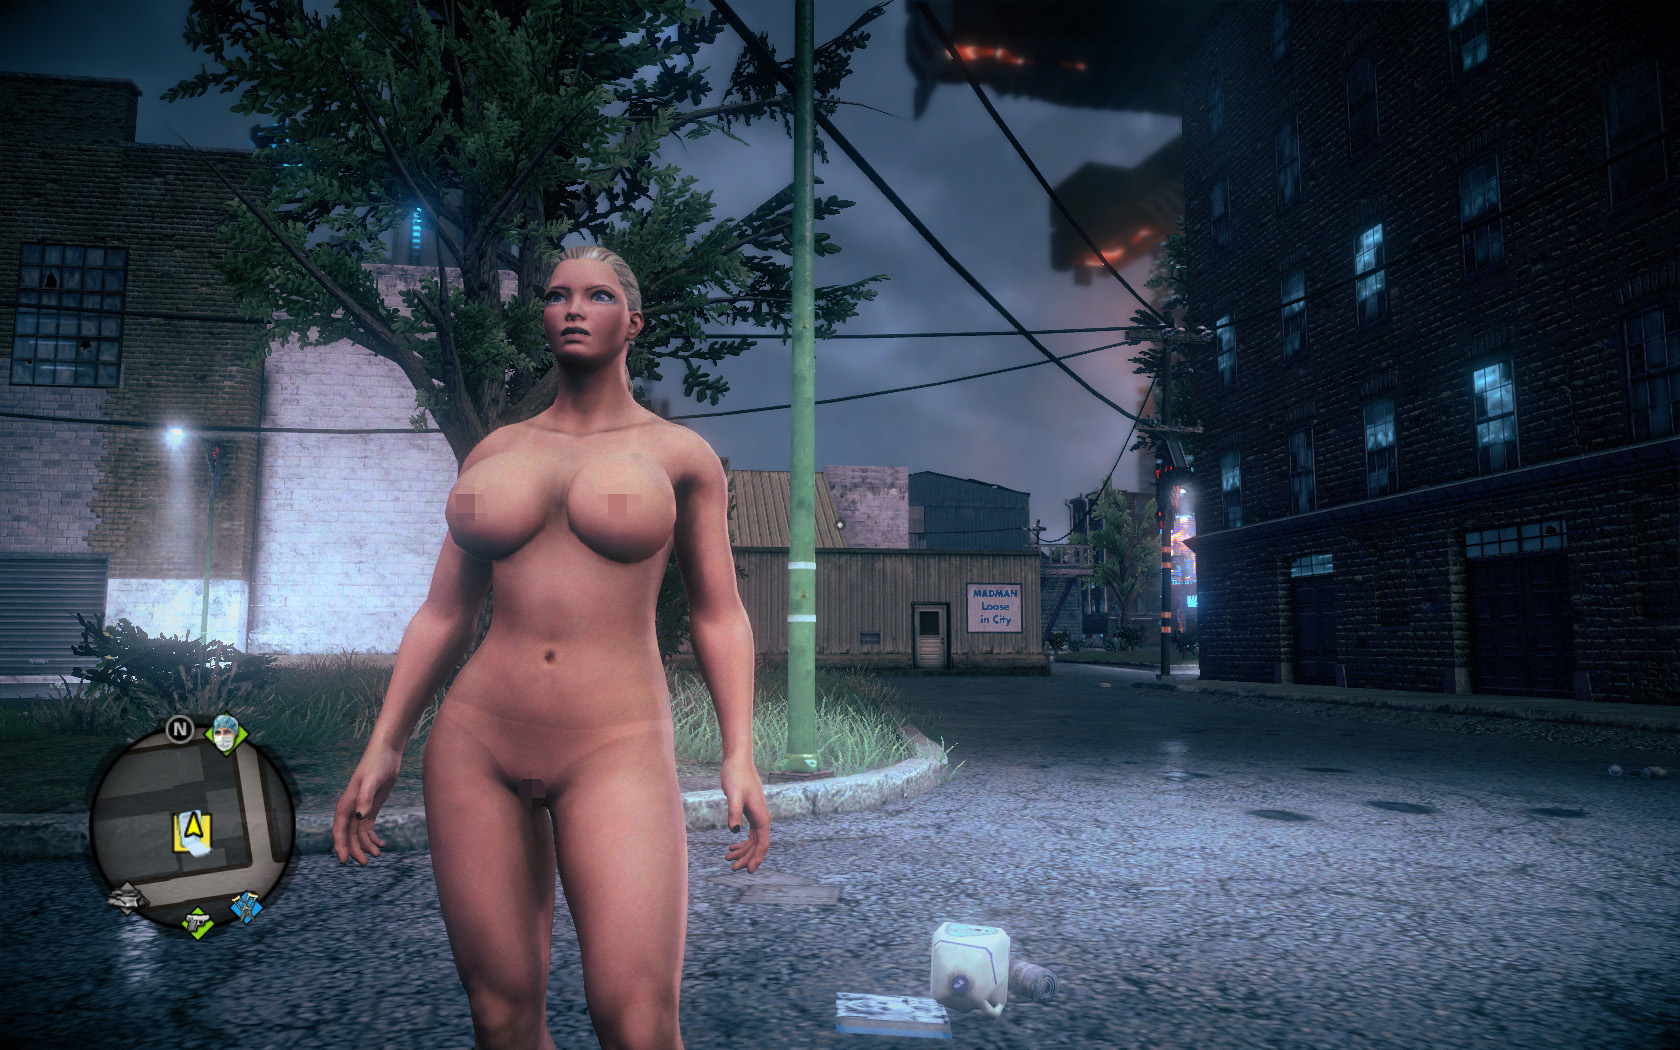 Saints row erotic erotic pictures